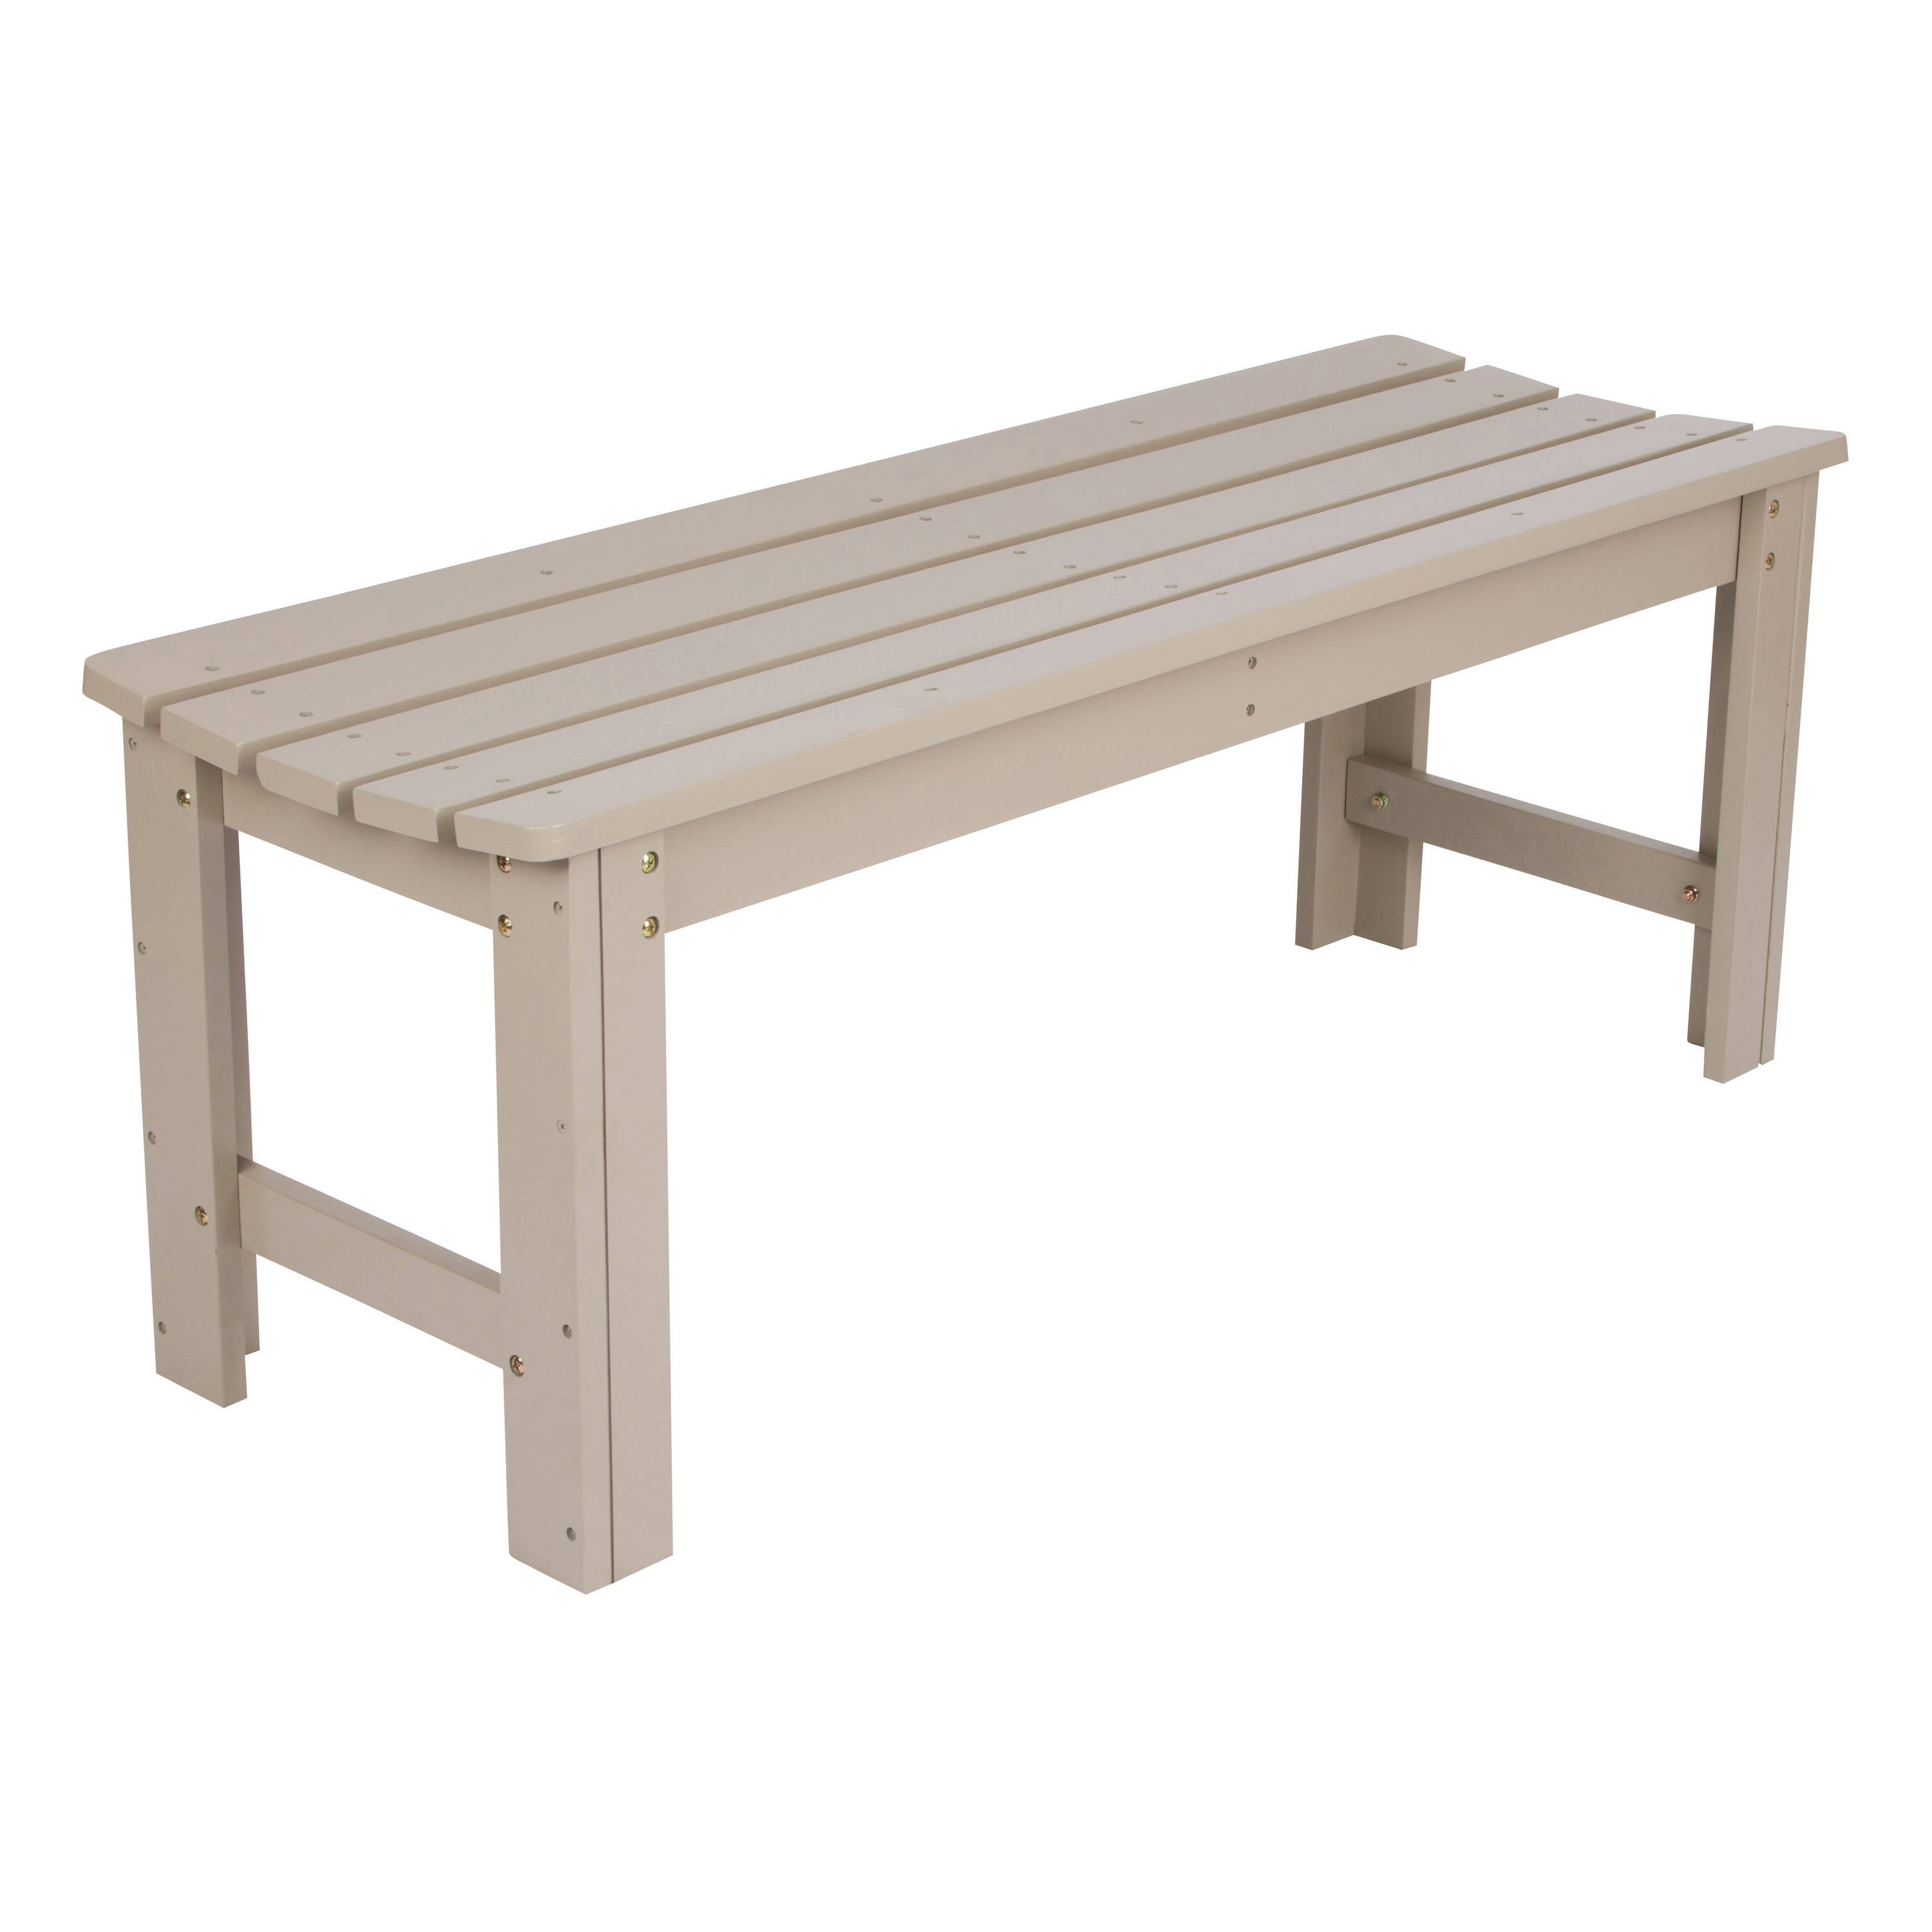 48 Inch Backless Garden Bench Click To Enlarge